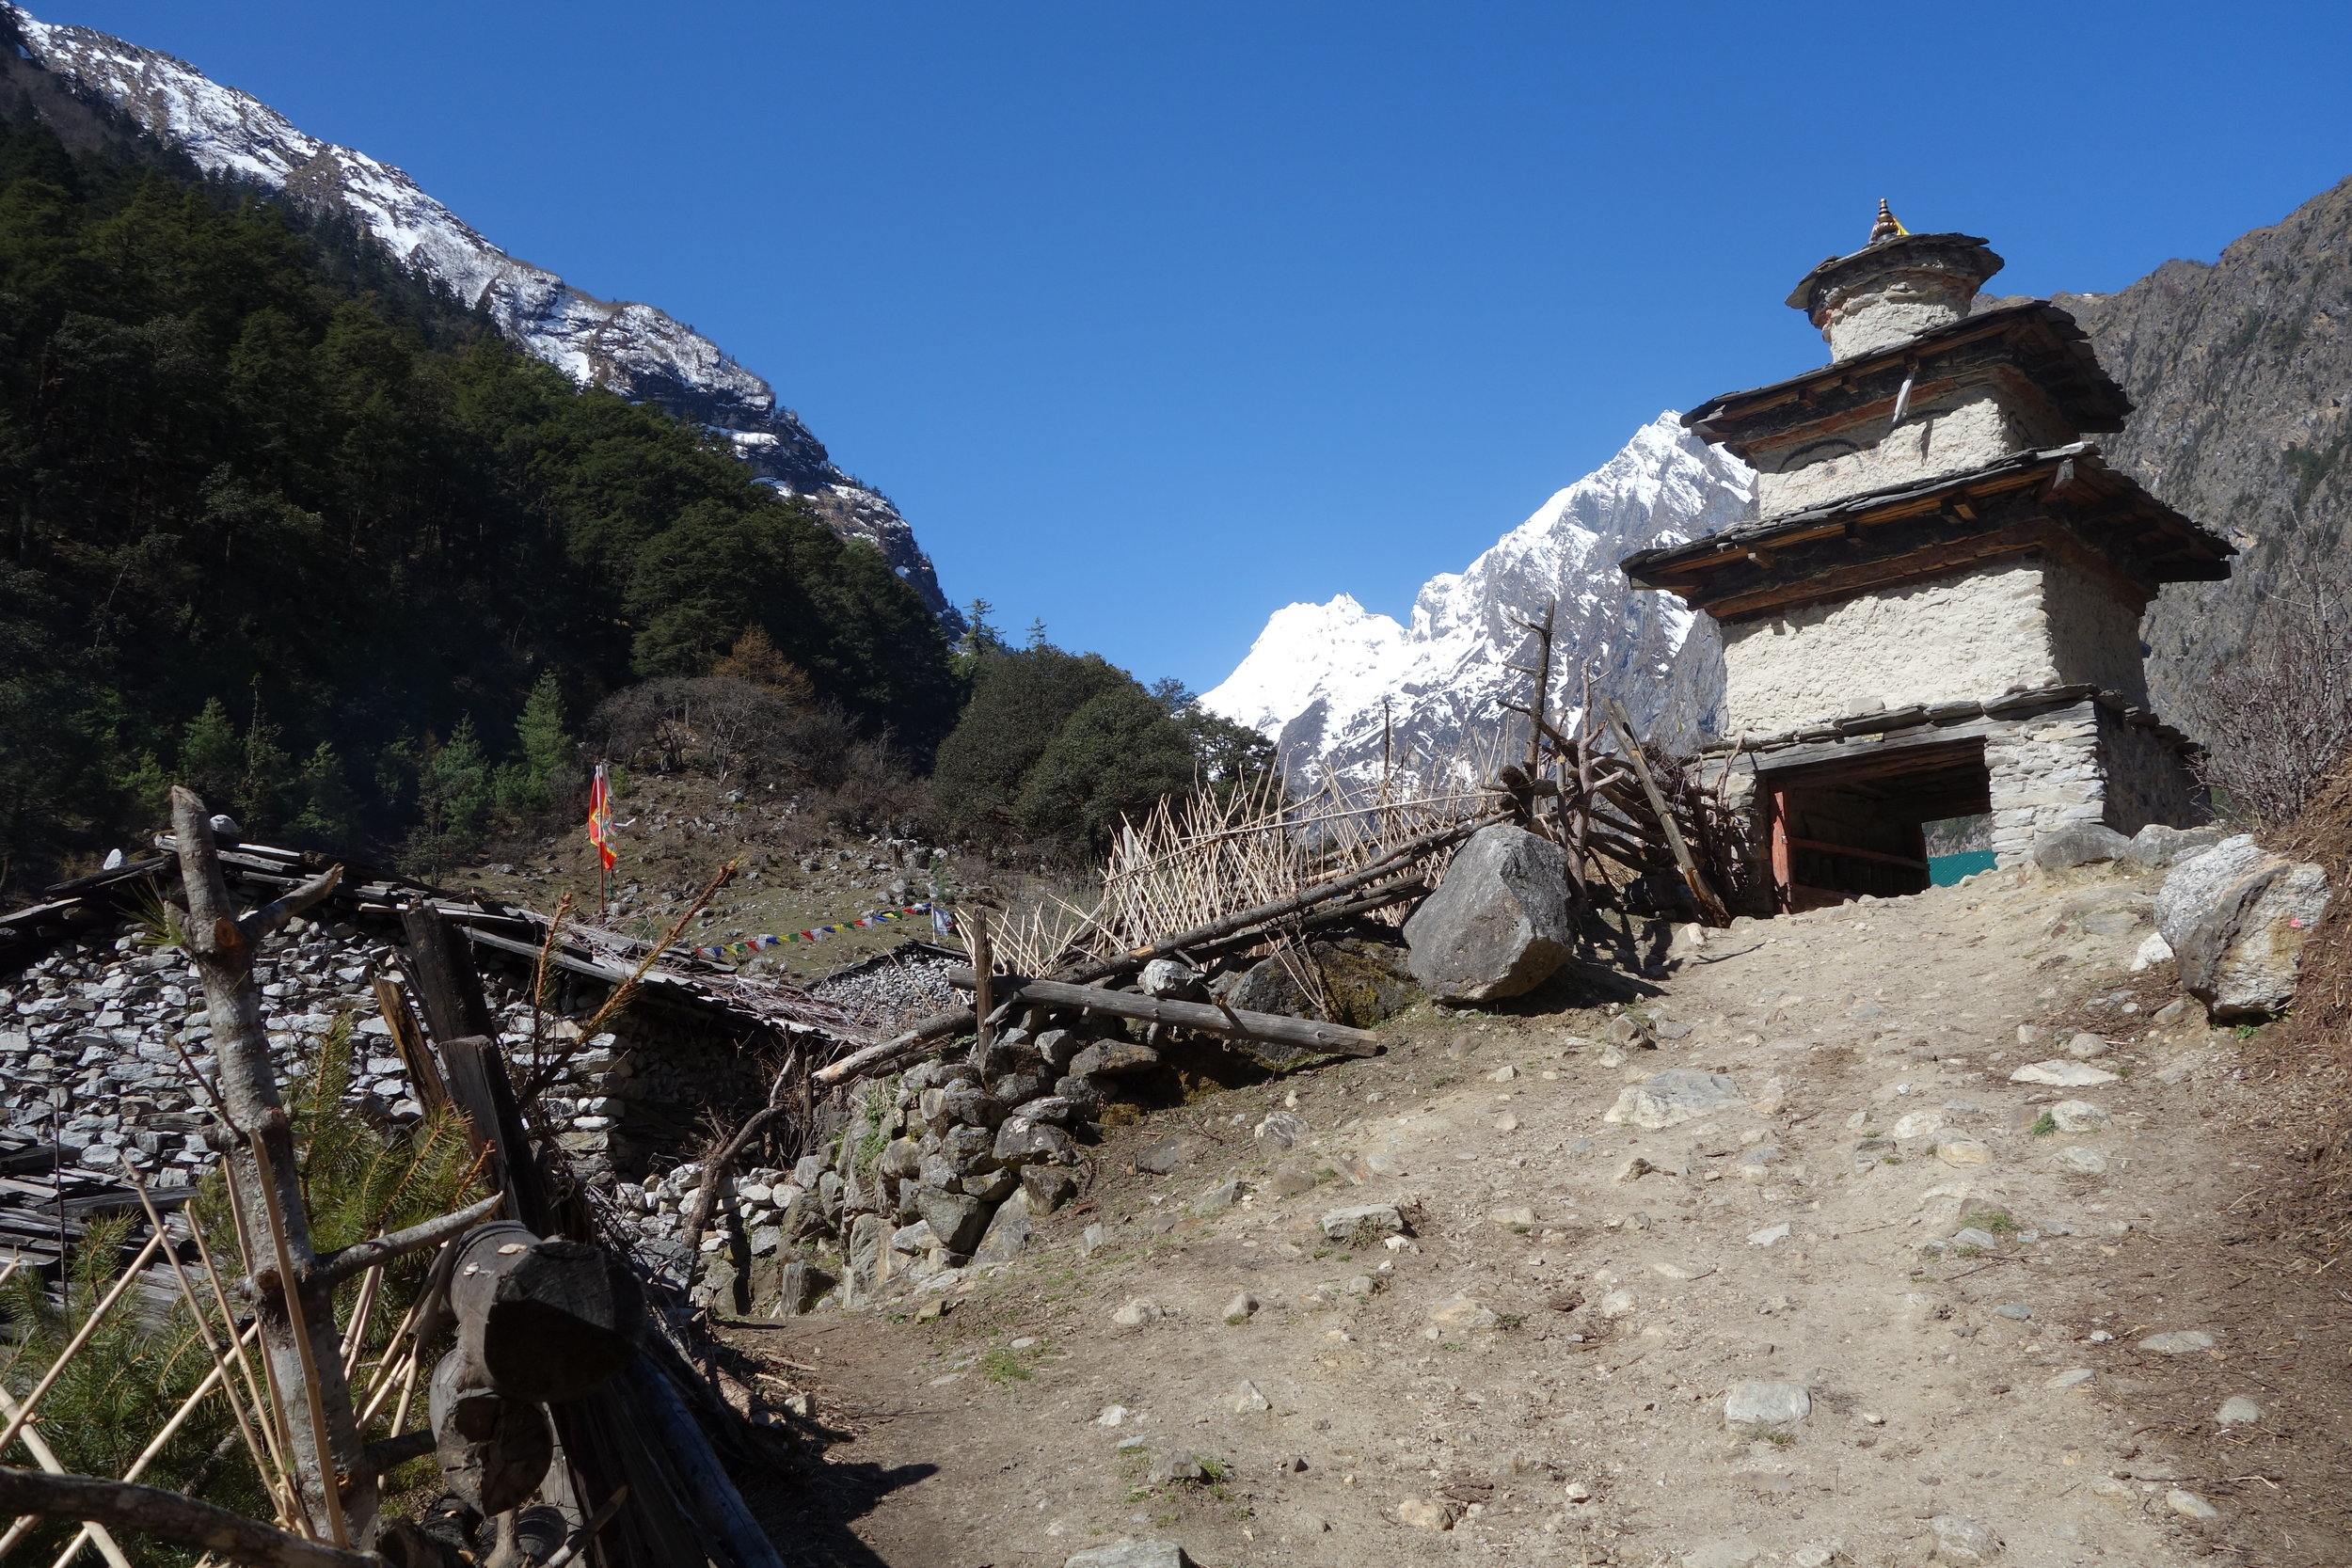 """Our trek started around 7:30, mostly on a track that is more hard packed earth and only some stairs.We cautiously crossed five snowy avalanches.There were still some steep climbs that I felt I was struggling with,and I tried the nasal breathing that KK advised was the best for oxygen intake but breathing in and out of my nose just initiated snot forming,so I kept stopping to blow. My body seemed to be overheating on the climbs so I put my poor performance down to not feeling too well.We made good time to Lho, arriving at 11:42,so a trek of only 4 hours 25 minutes with a morning tea break.The early arrival gave us time to wash our clothes, have a hot shower (200 rupee)including a hair wash. The afternoon was sunny but a cold breeze cut to the bone.The room was like a wind tunnel.  Nev , Jo and Greg climbed up to a Buddhist monastery. It was high on the hillside and I decided to stay back to rest.When we arrived there was a community meeting of locals underway. There were many people sitting outside with a spectacular view over the valley and the mountains beyond. Their discussions continued to around 5:30 by which time it was bitterly cold.There were lots of raised voices at one point,and everyone standing and yelling, and a bit of argy bargy.I can't believe how cold it is!I have fleece pants covering my legs and my body is layered with merino chamisole,tshirt and sweater, a down jacket and head topped with a hat.At least it has been sunny and warm while trekking.KK tells us there is bad news about the pass, because of recent snow. Evidently Samarkand to Samdo is 2 feet deep with snow.Time will tell.Rained heavily in the night, woke 10:15 thinking it must be around 4am as disparate to go to toilet, had to go out in pelting rain. Fresh snow down quite low. Villages have little children greeting """"Namaste chocolate"""",""""Namaste balloon""""with palm outstretched we have nothing for them. Most have running noses and cheeks skin thick and red as in wind burn."""